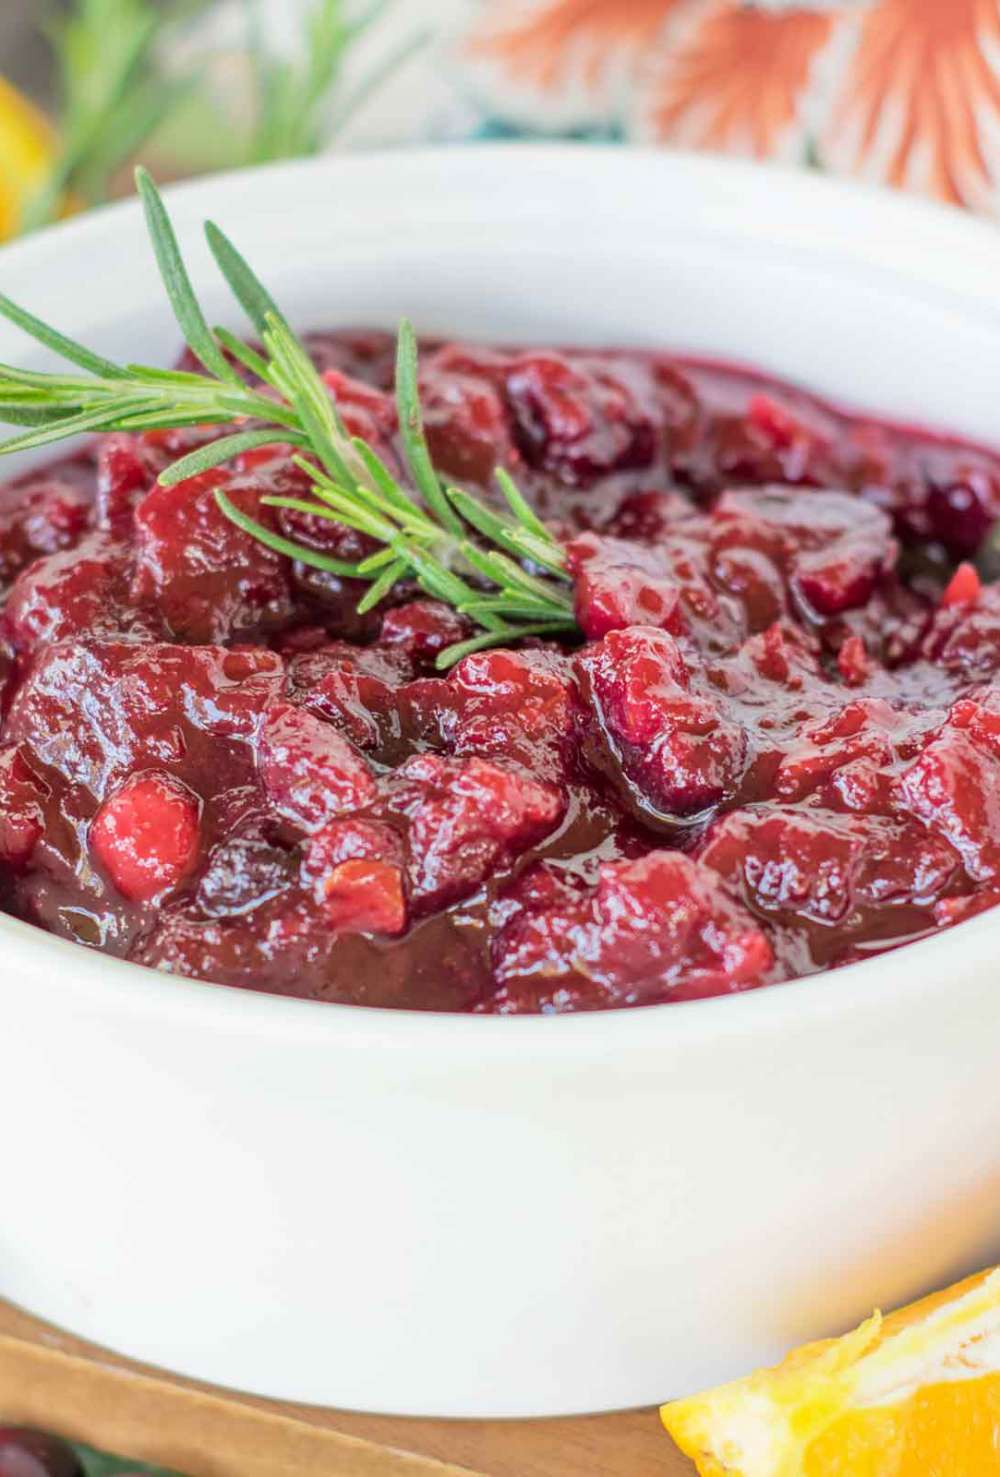 Save your sanity! Make your cranberry sauce ahead of time!